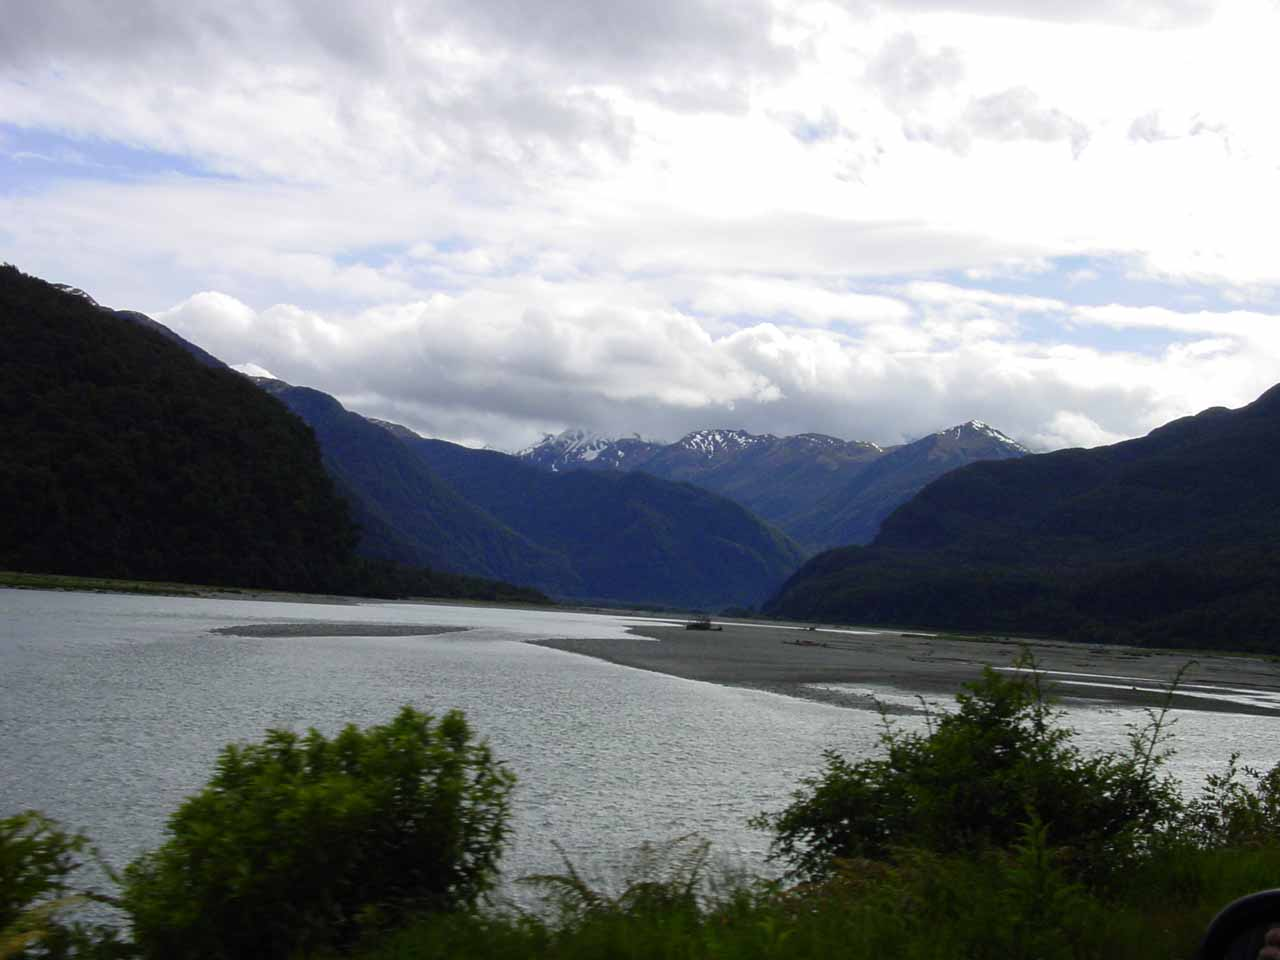 Looking into the Haast River Valley from the highway